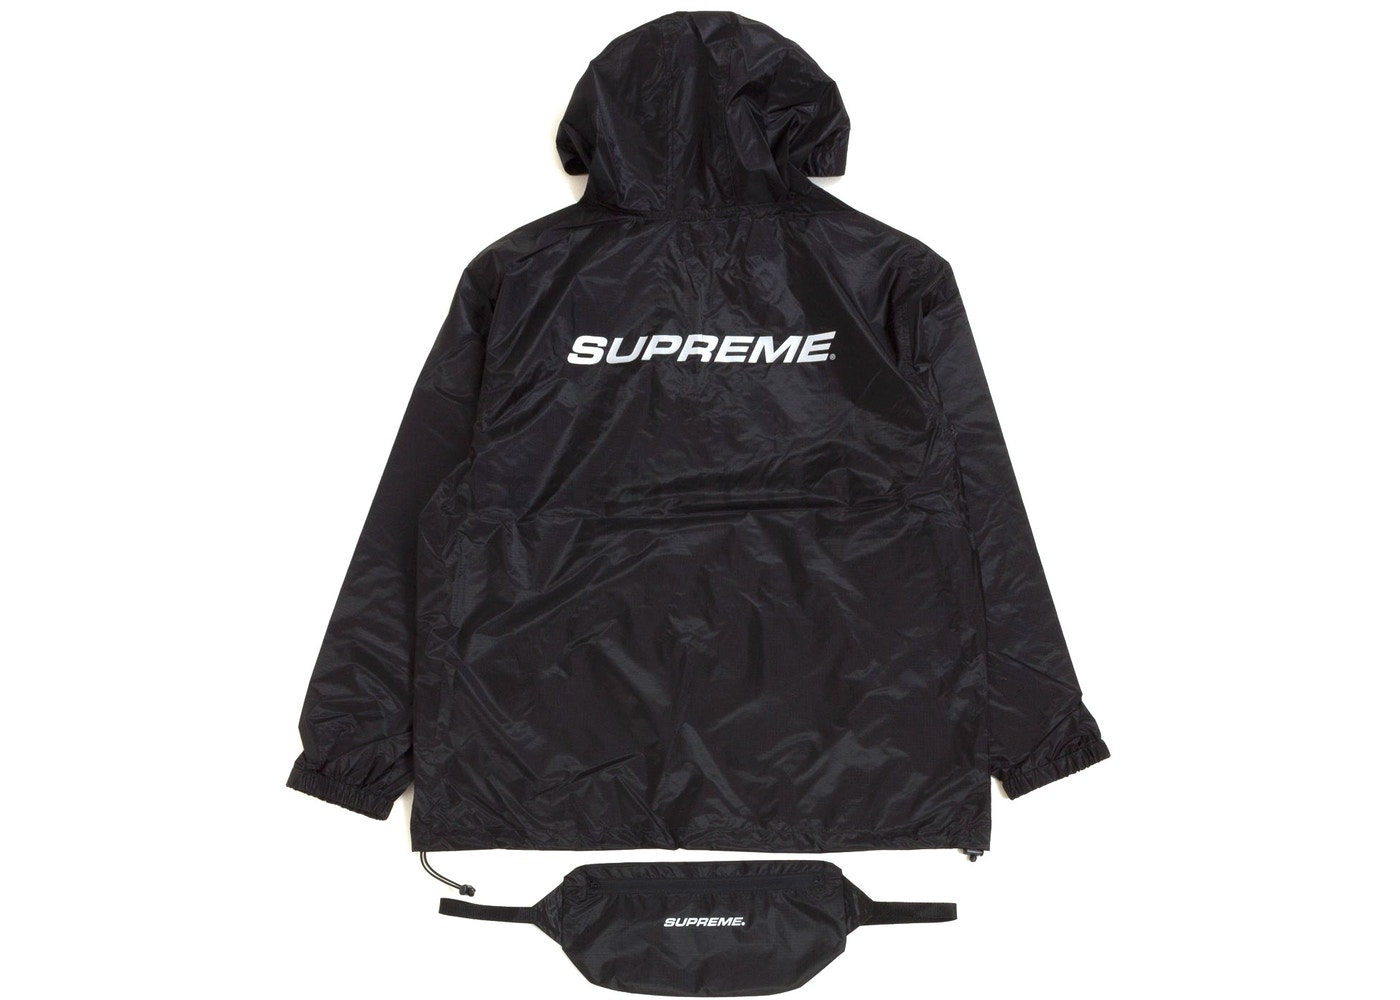 a1bcdf159916 Supreme Packable Ripstop Pullover (With Packable Bag) Black - FW17